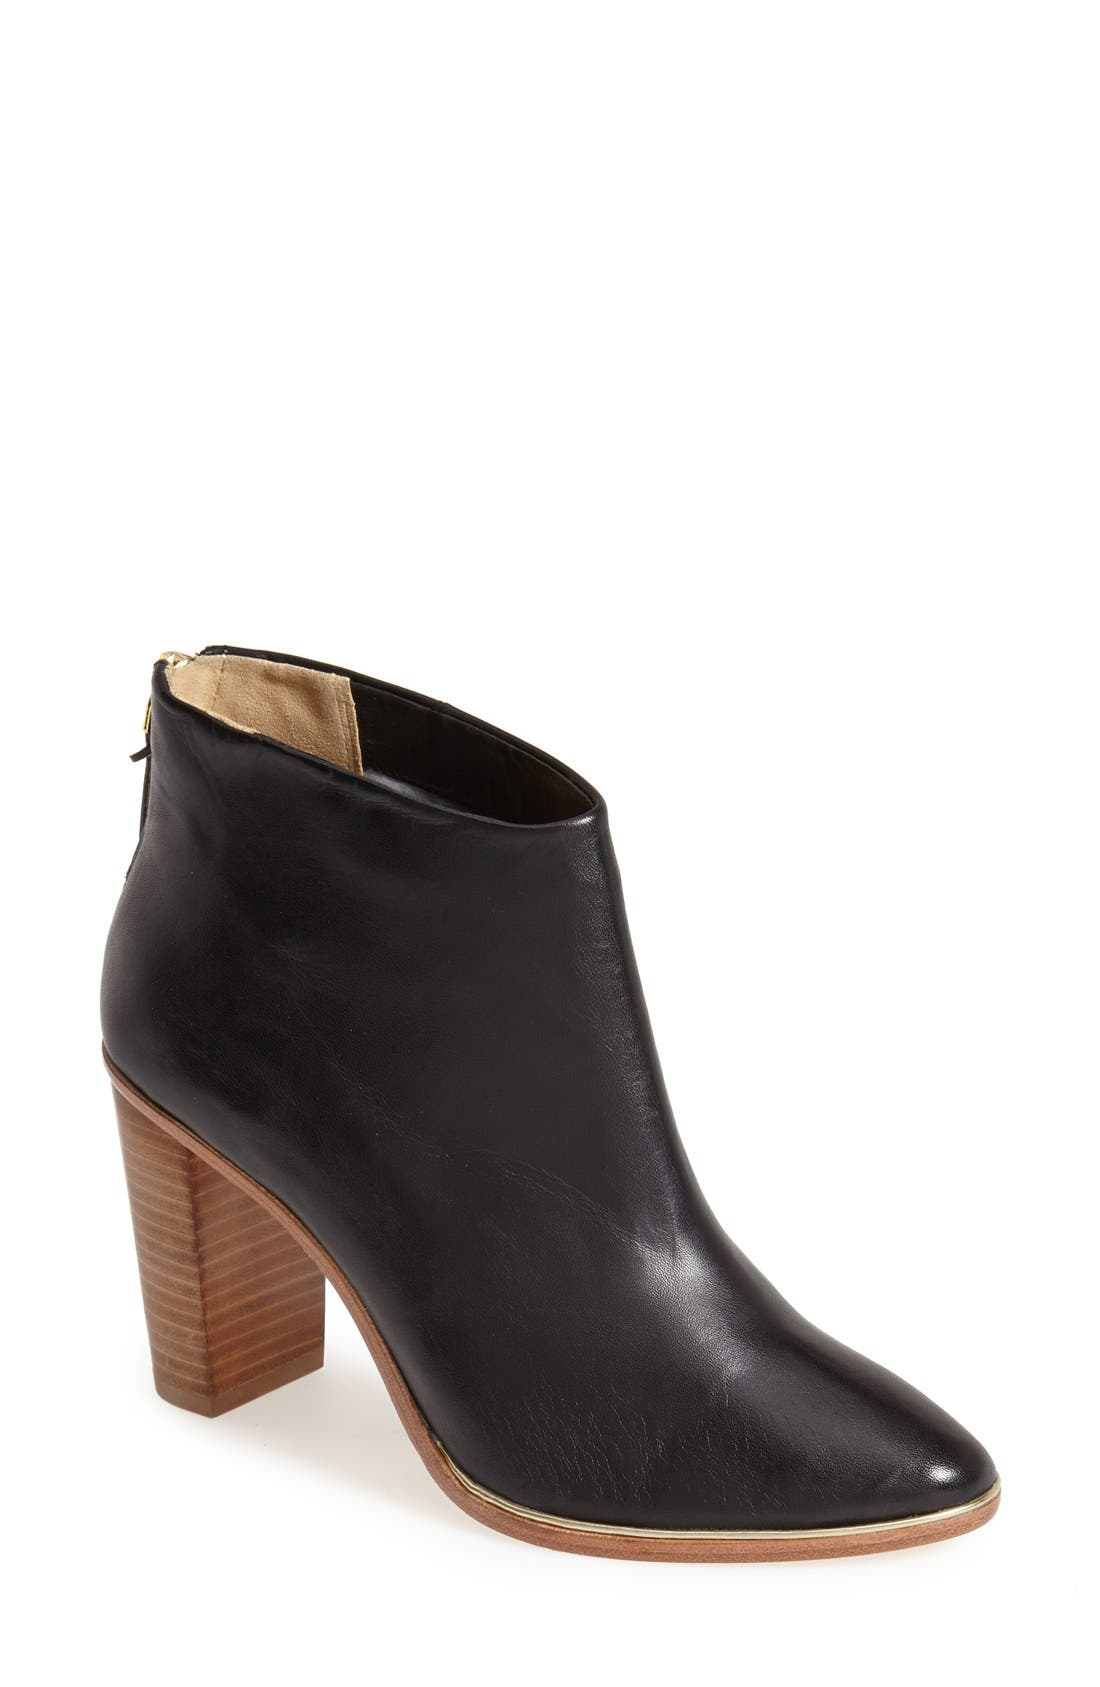 Alternate Image 1 Selected - Ted Baker London 'Lorca' Leather Bootie (Women)